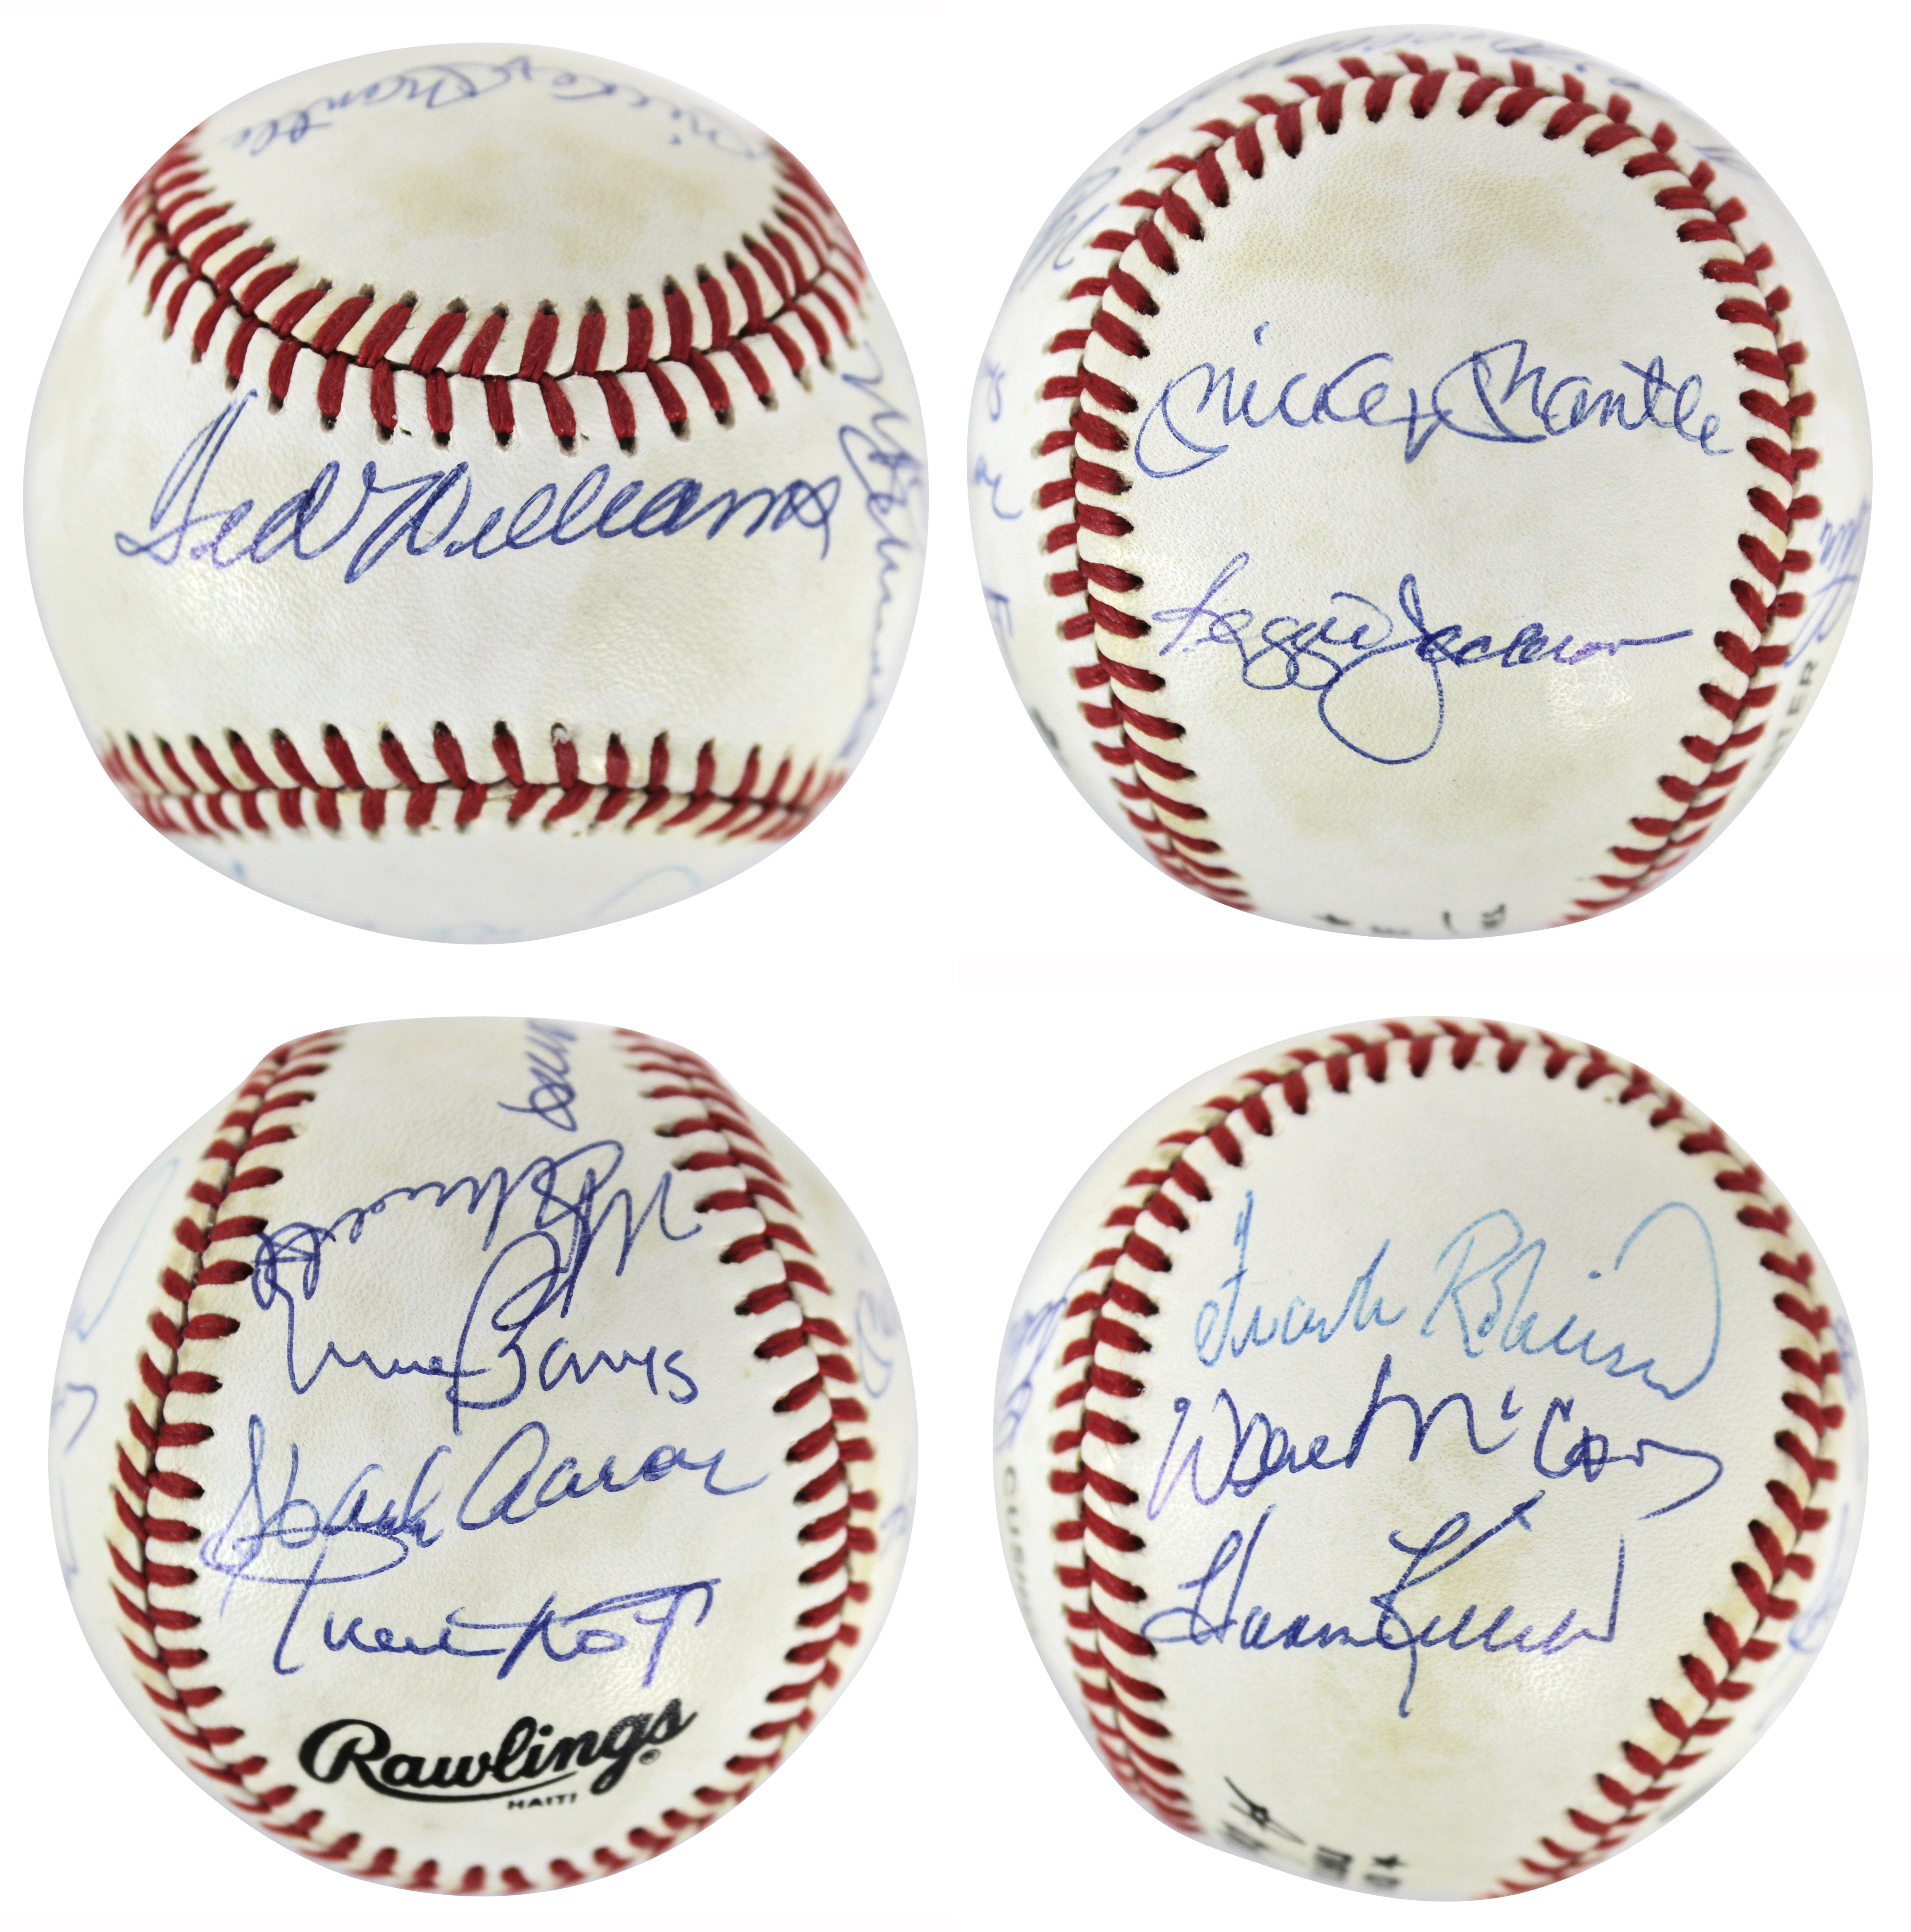 500 Home Run Club (11) Williams, Mantle, Aaron Signed Onl Baseball Bas #a70564